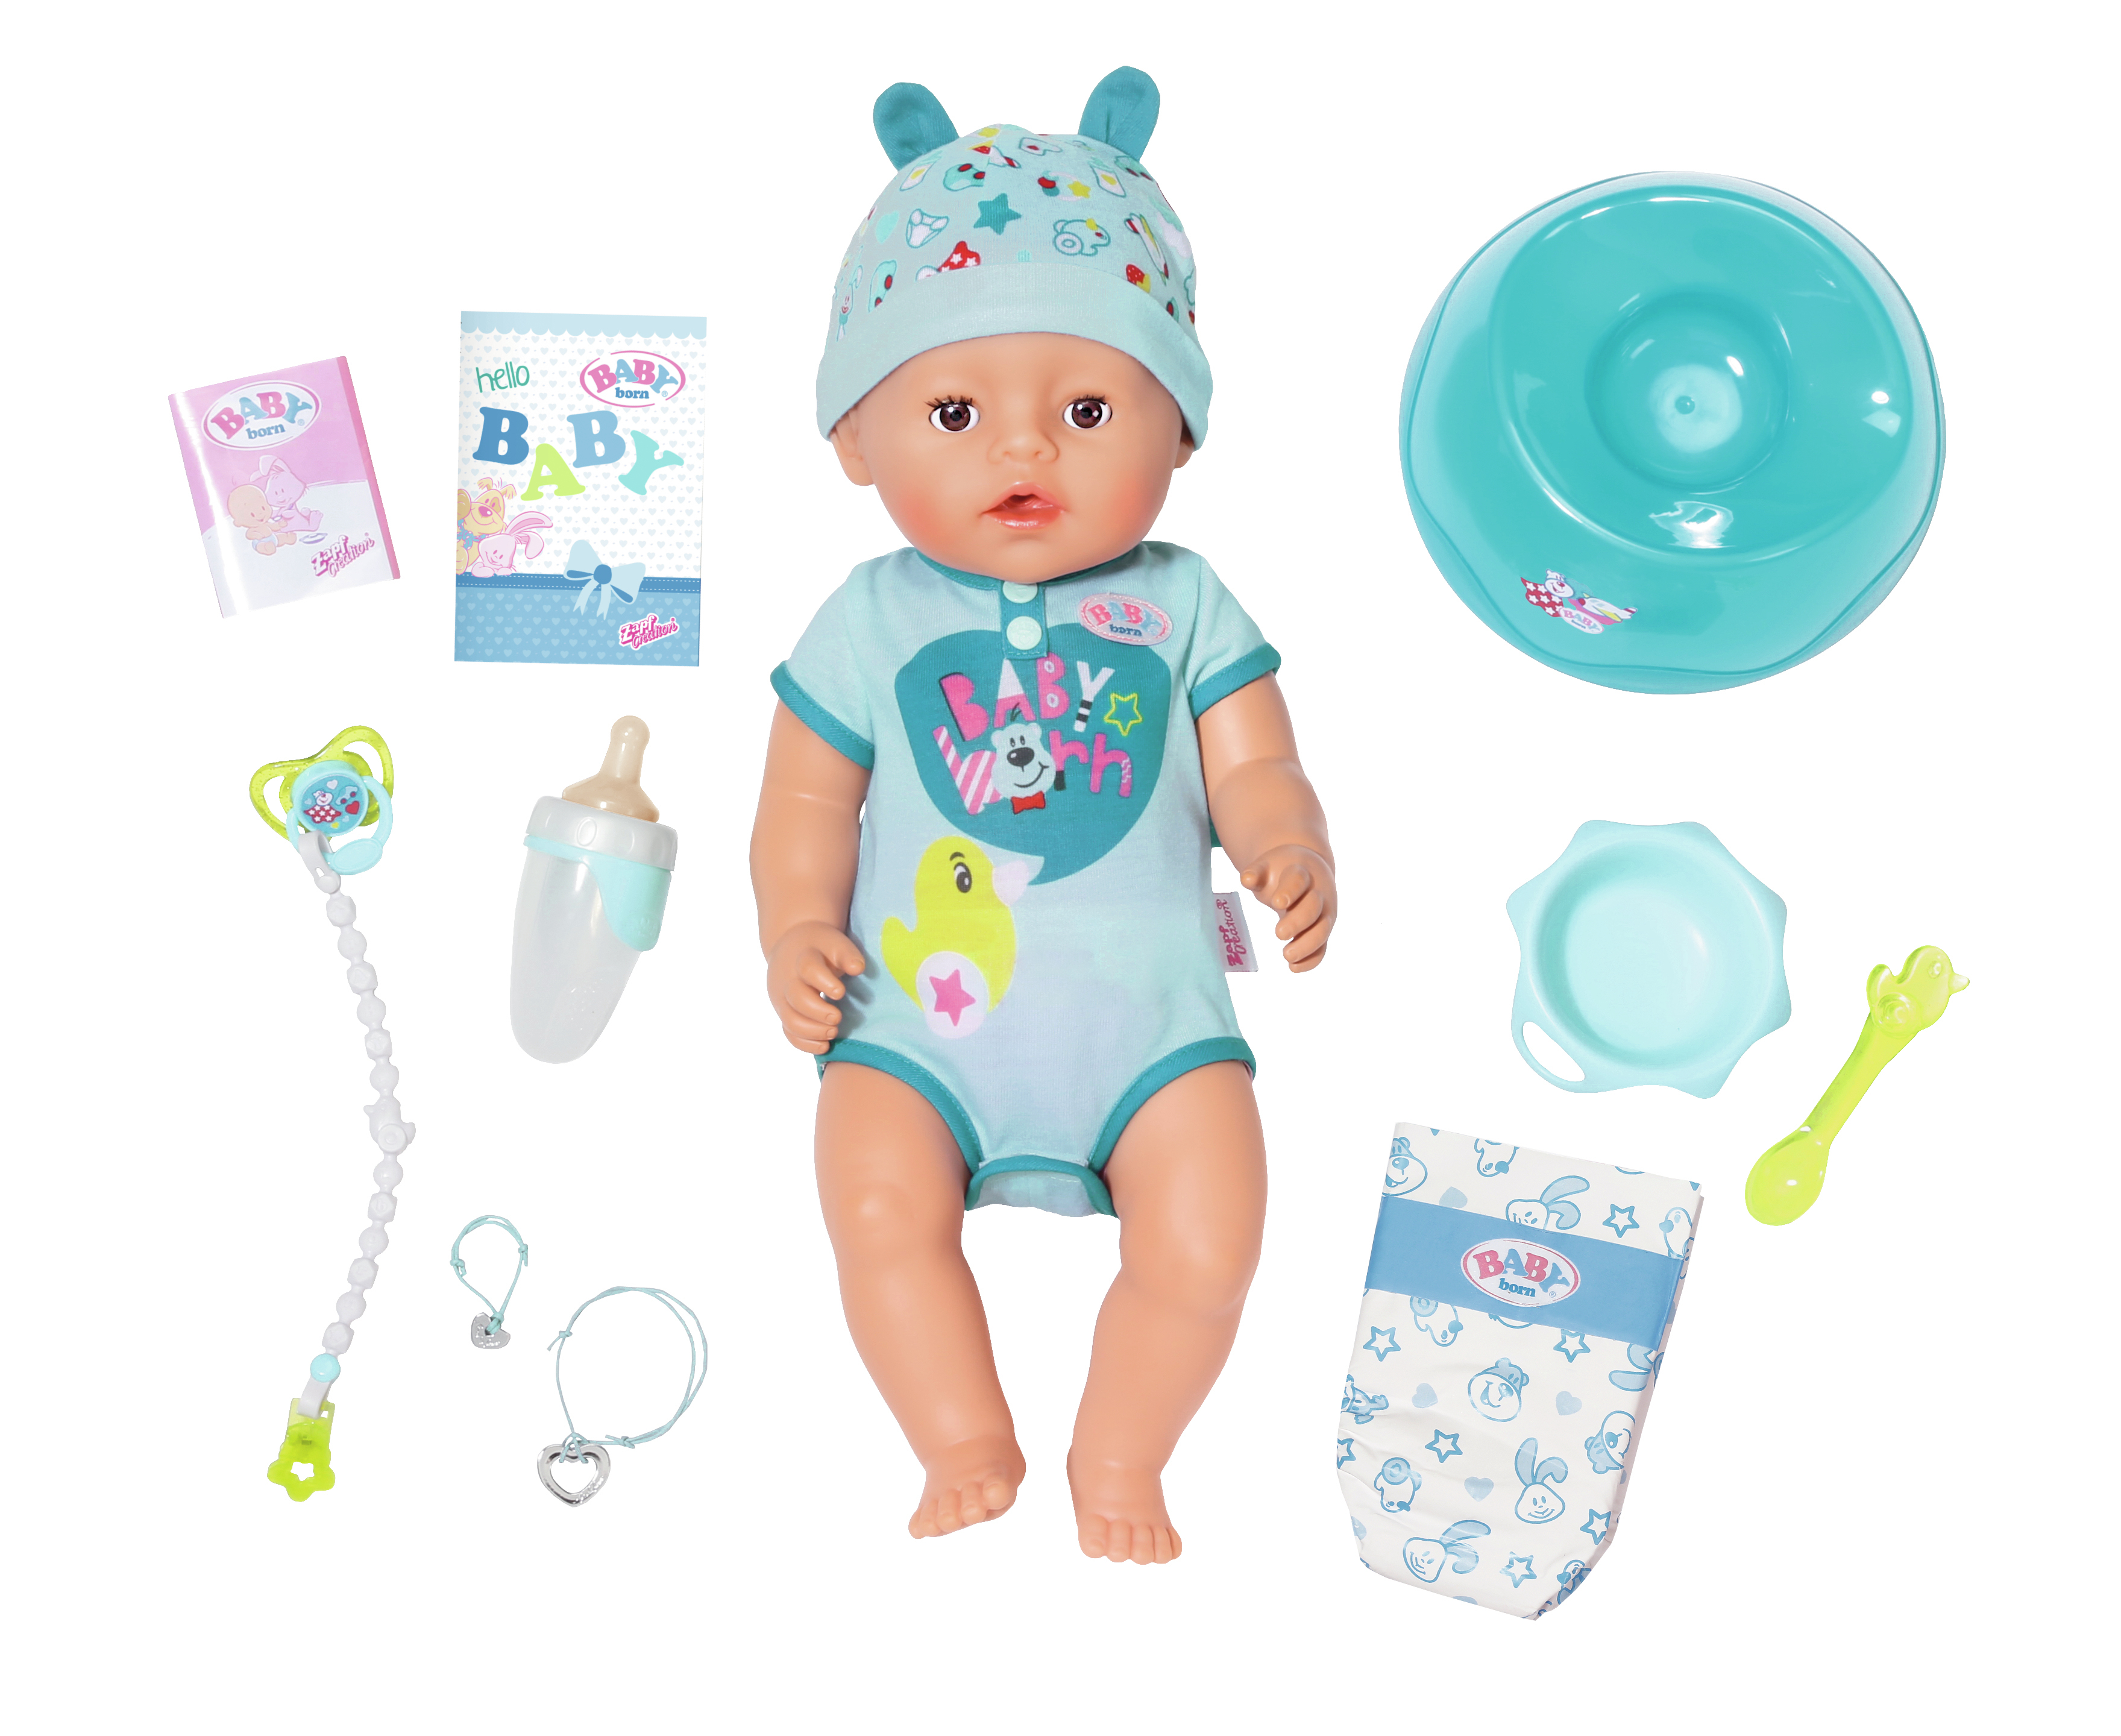 Zapf BABY born Soft Touch Boy